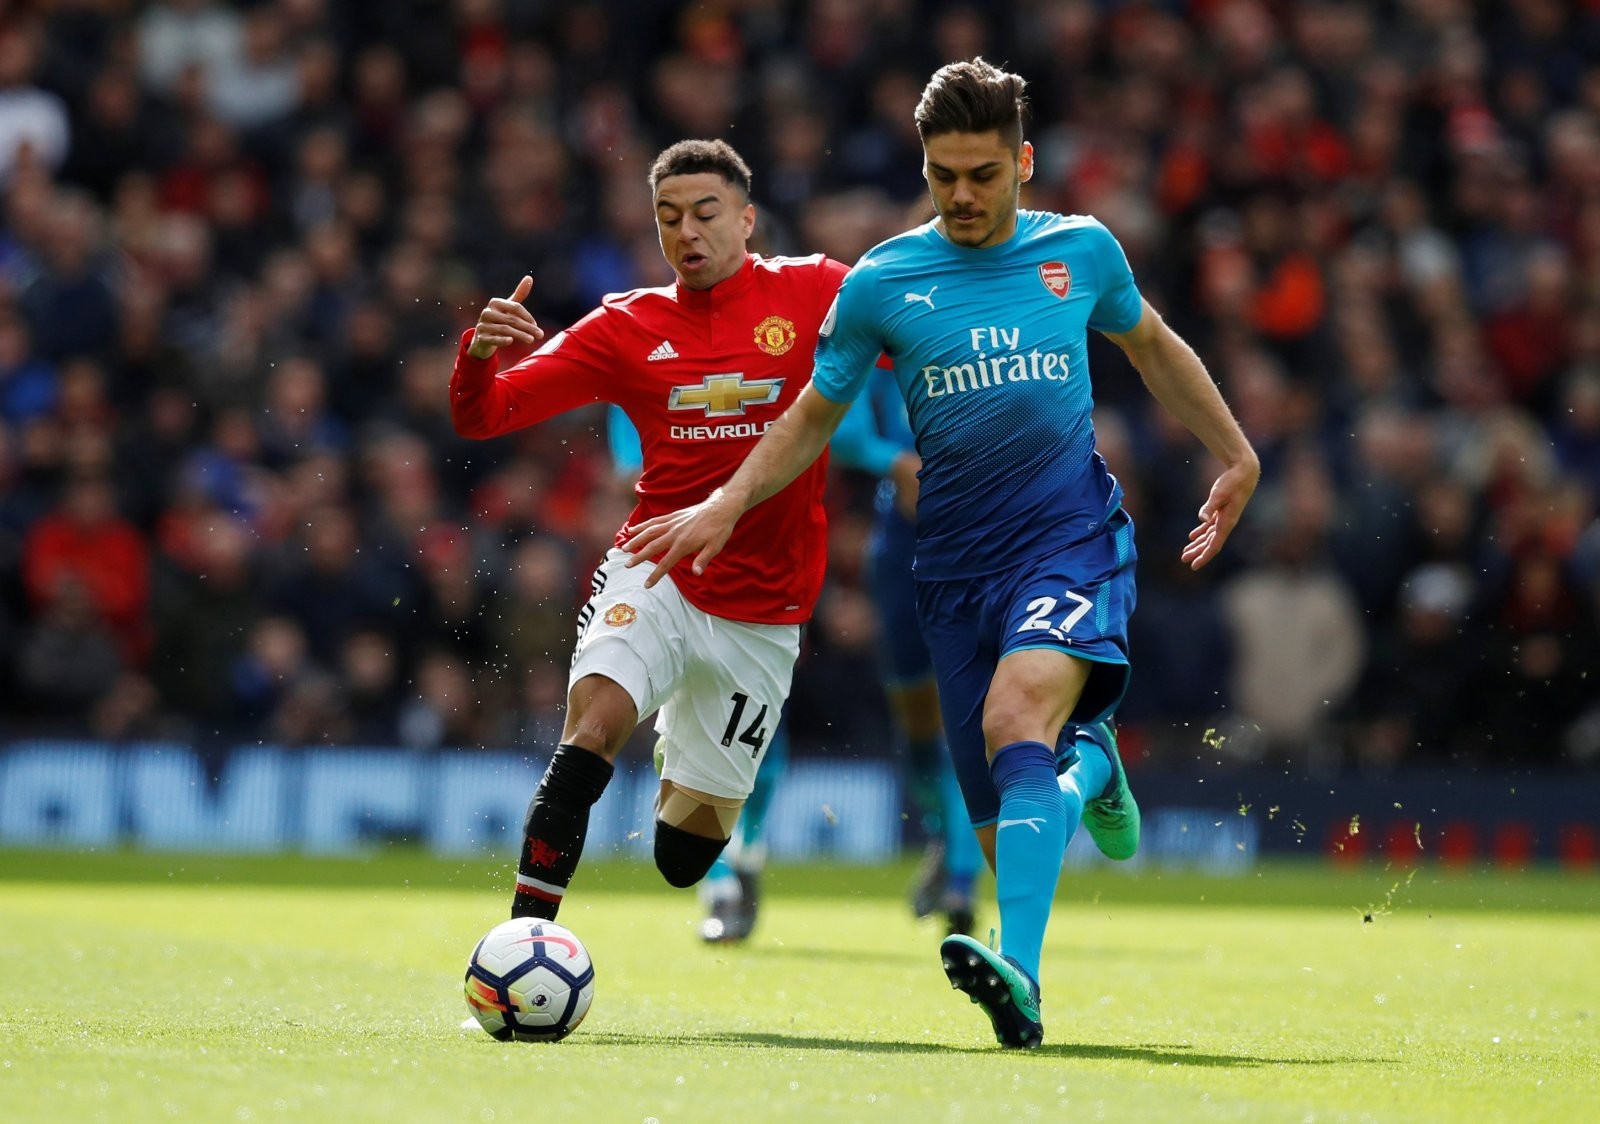 Arsenal fans don't understand what's wrong with Mavropanos